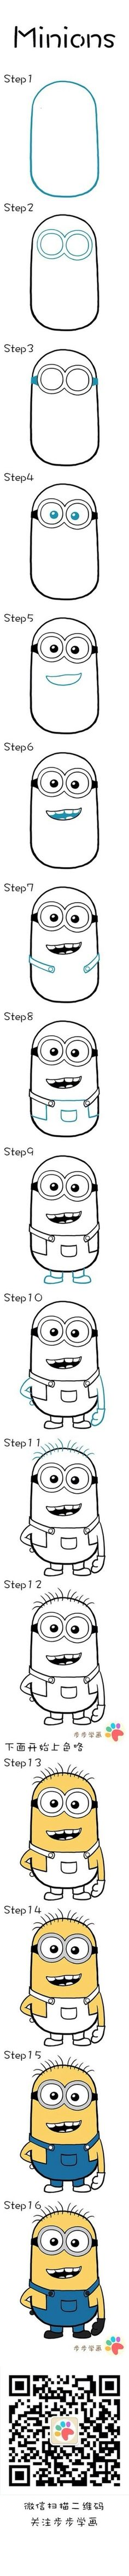 Animasi Lucu Minion Despicable Me 2 Animasi Minion Pinterest